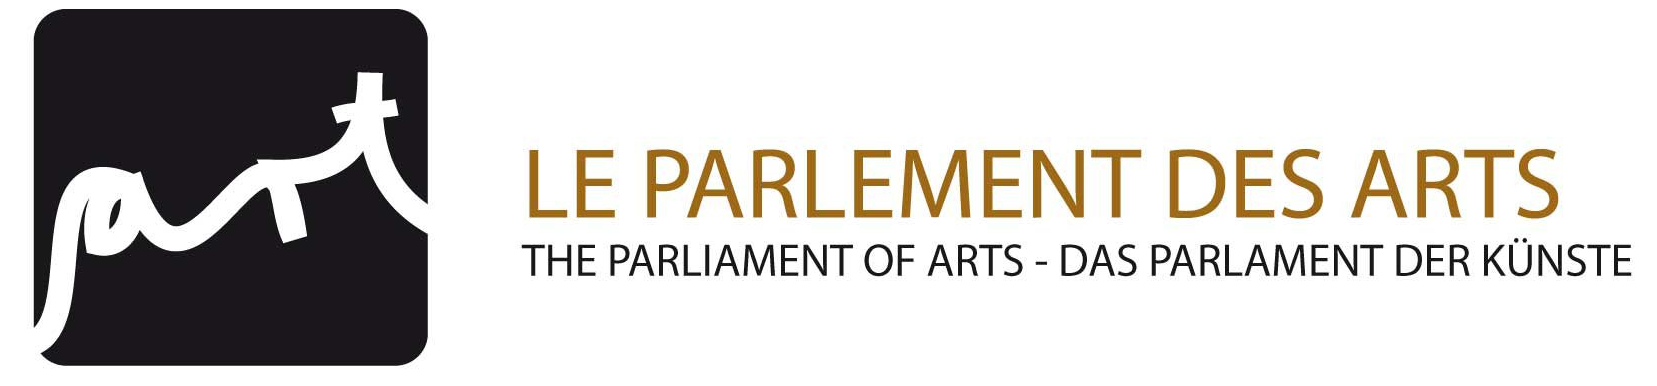 Logo Parlements des arts